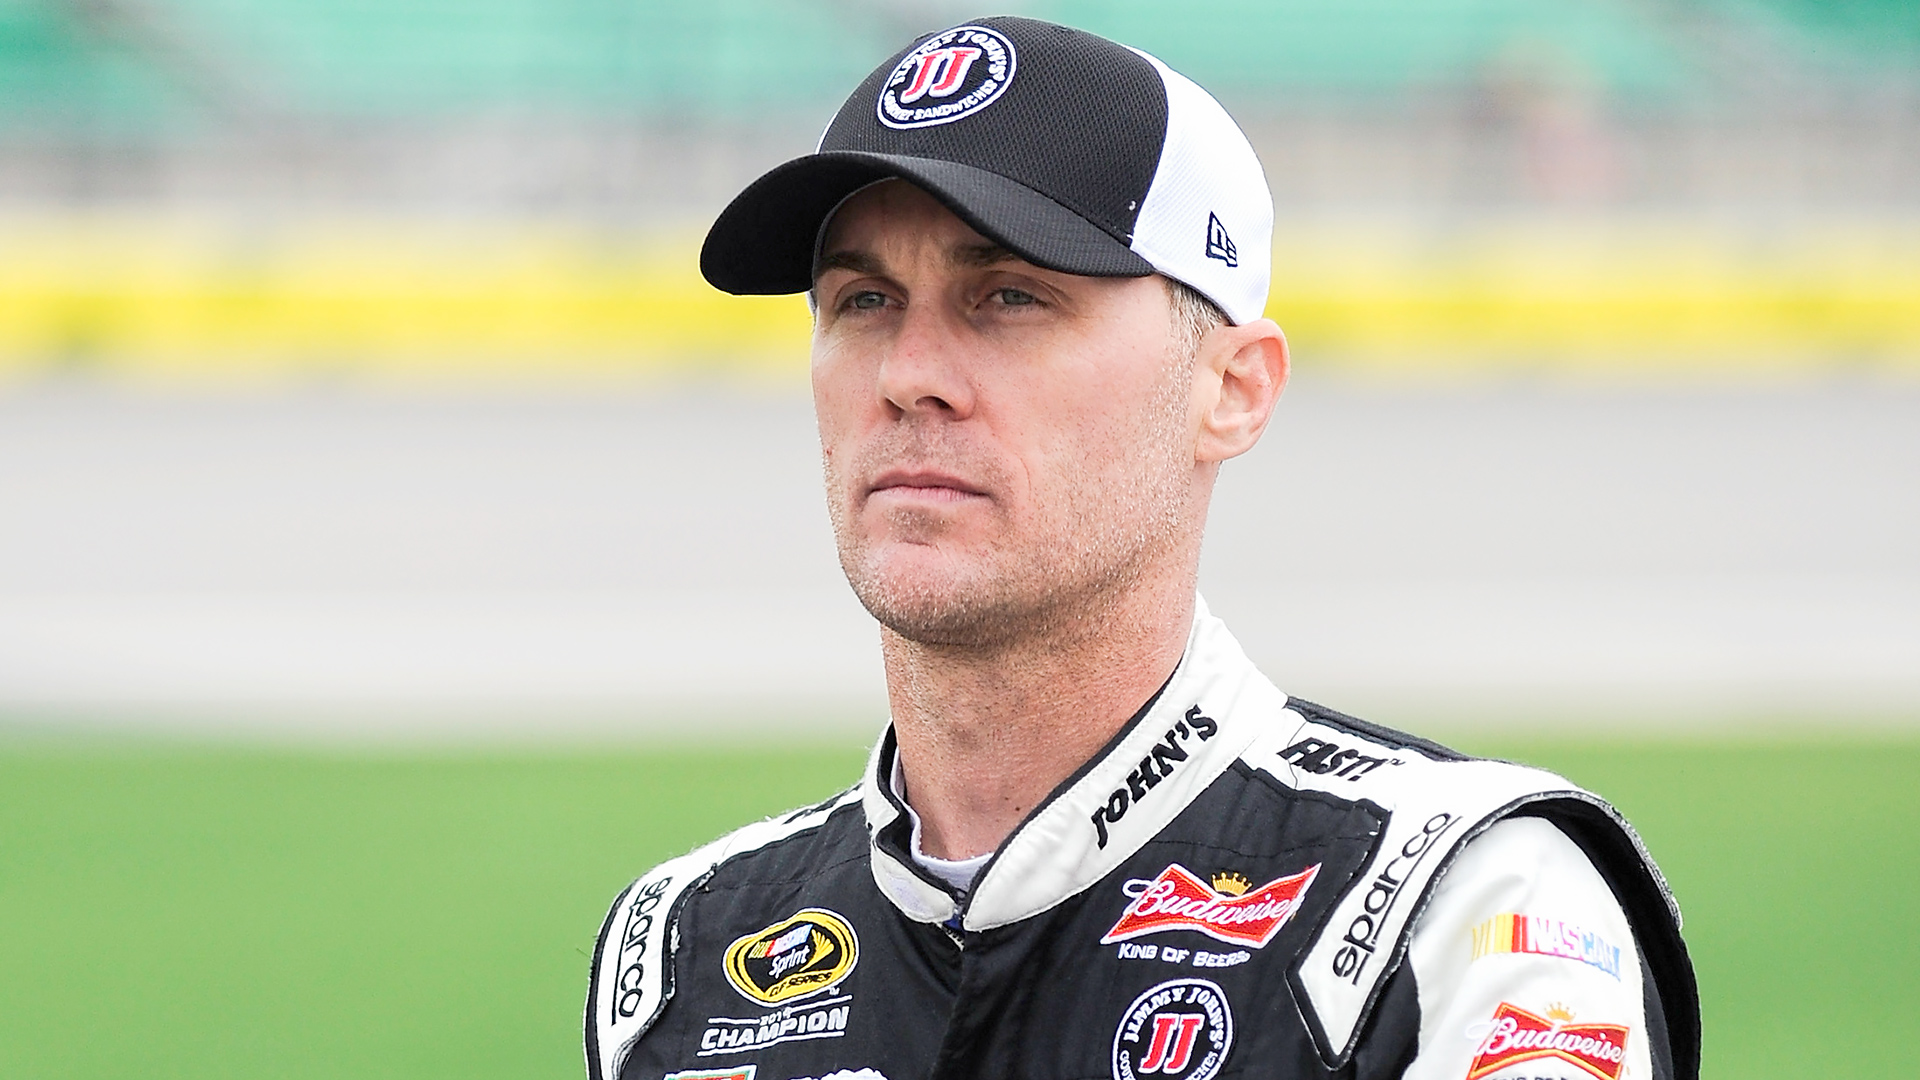 NASCAR odds and betting preview – Making a case against Harvick at Phoenix